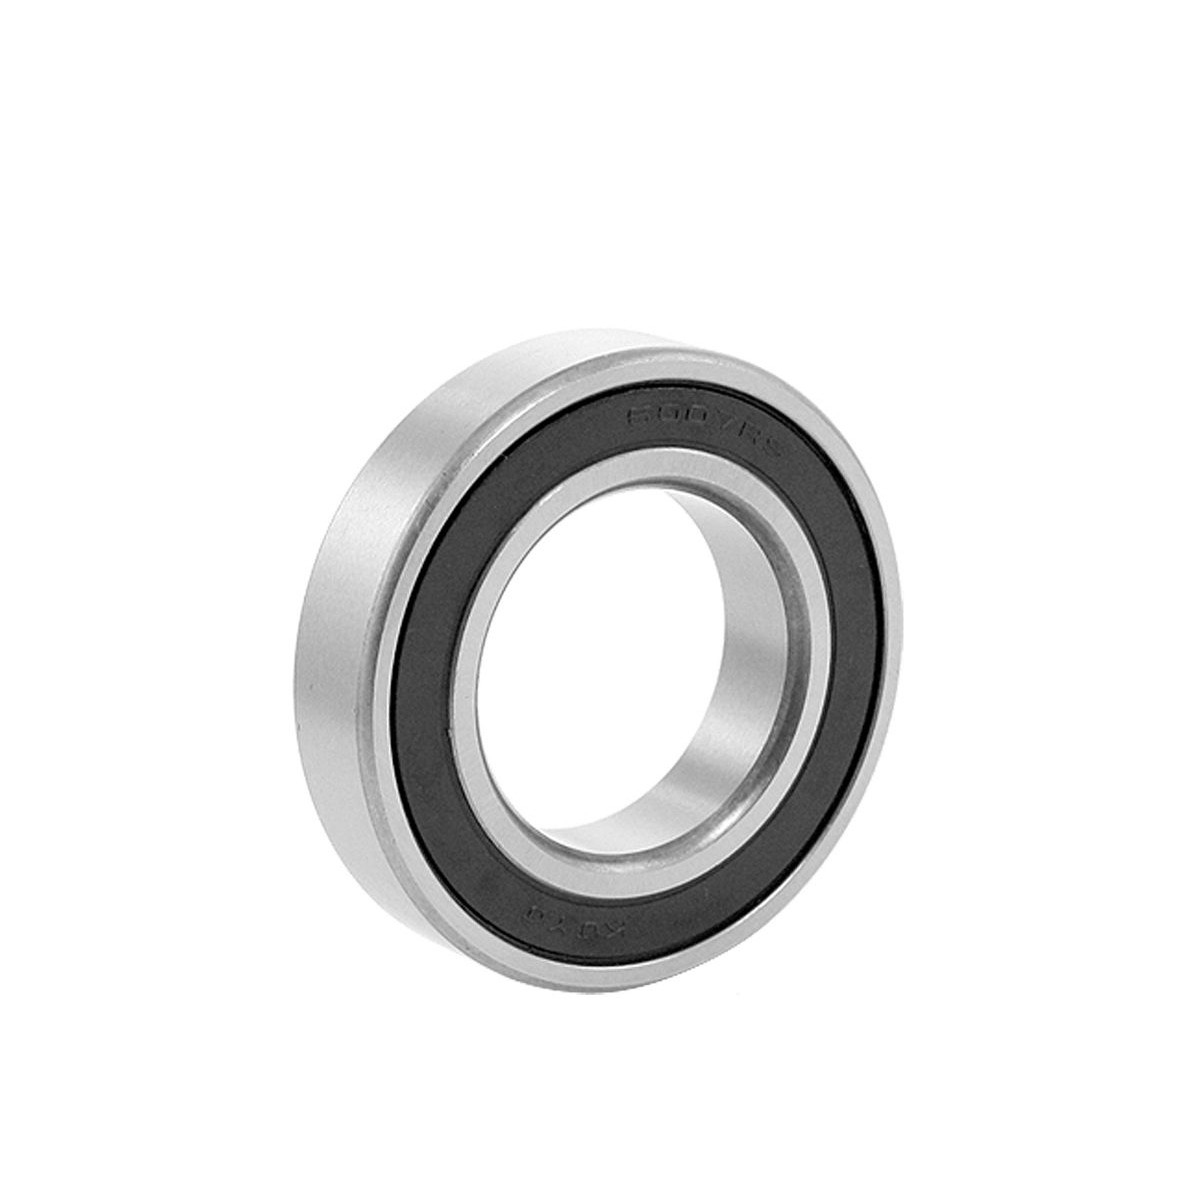 EXCESS 20MM BEARING